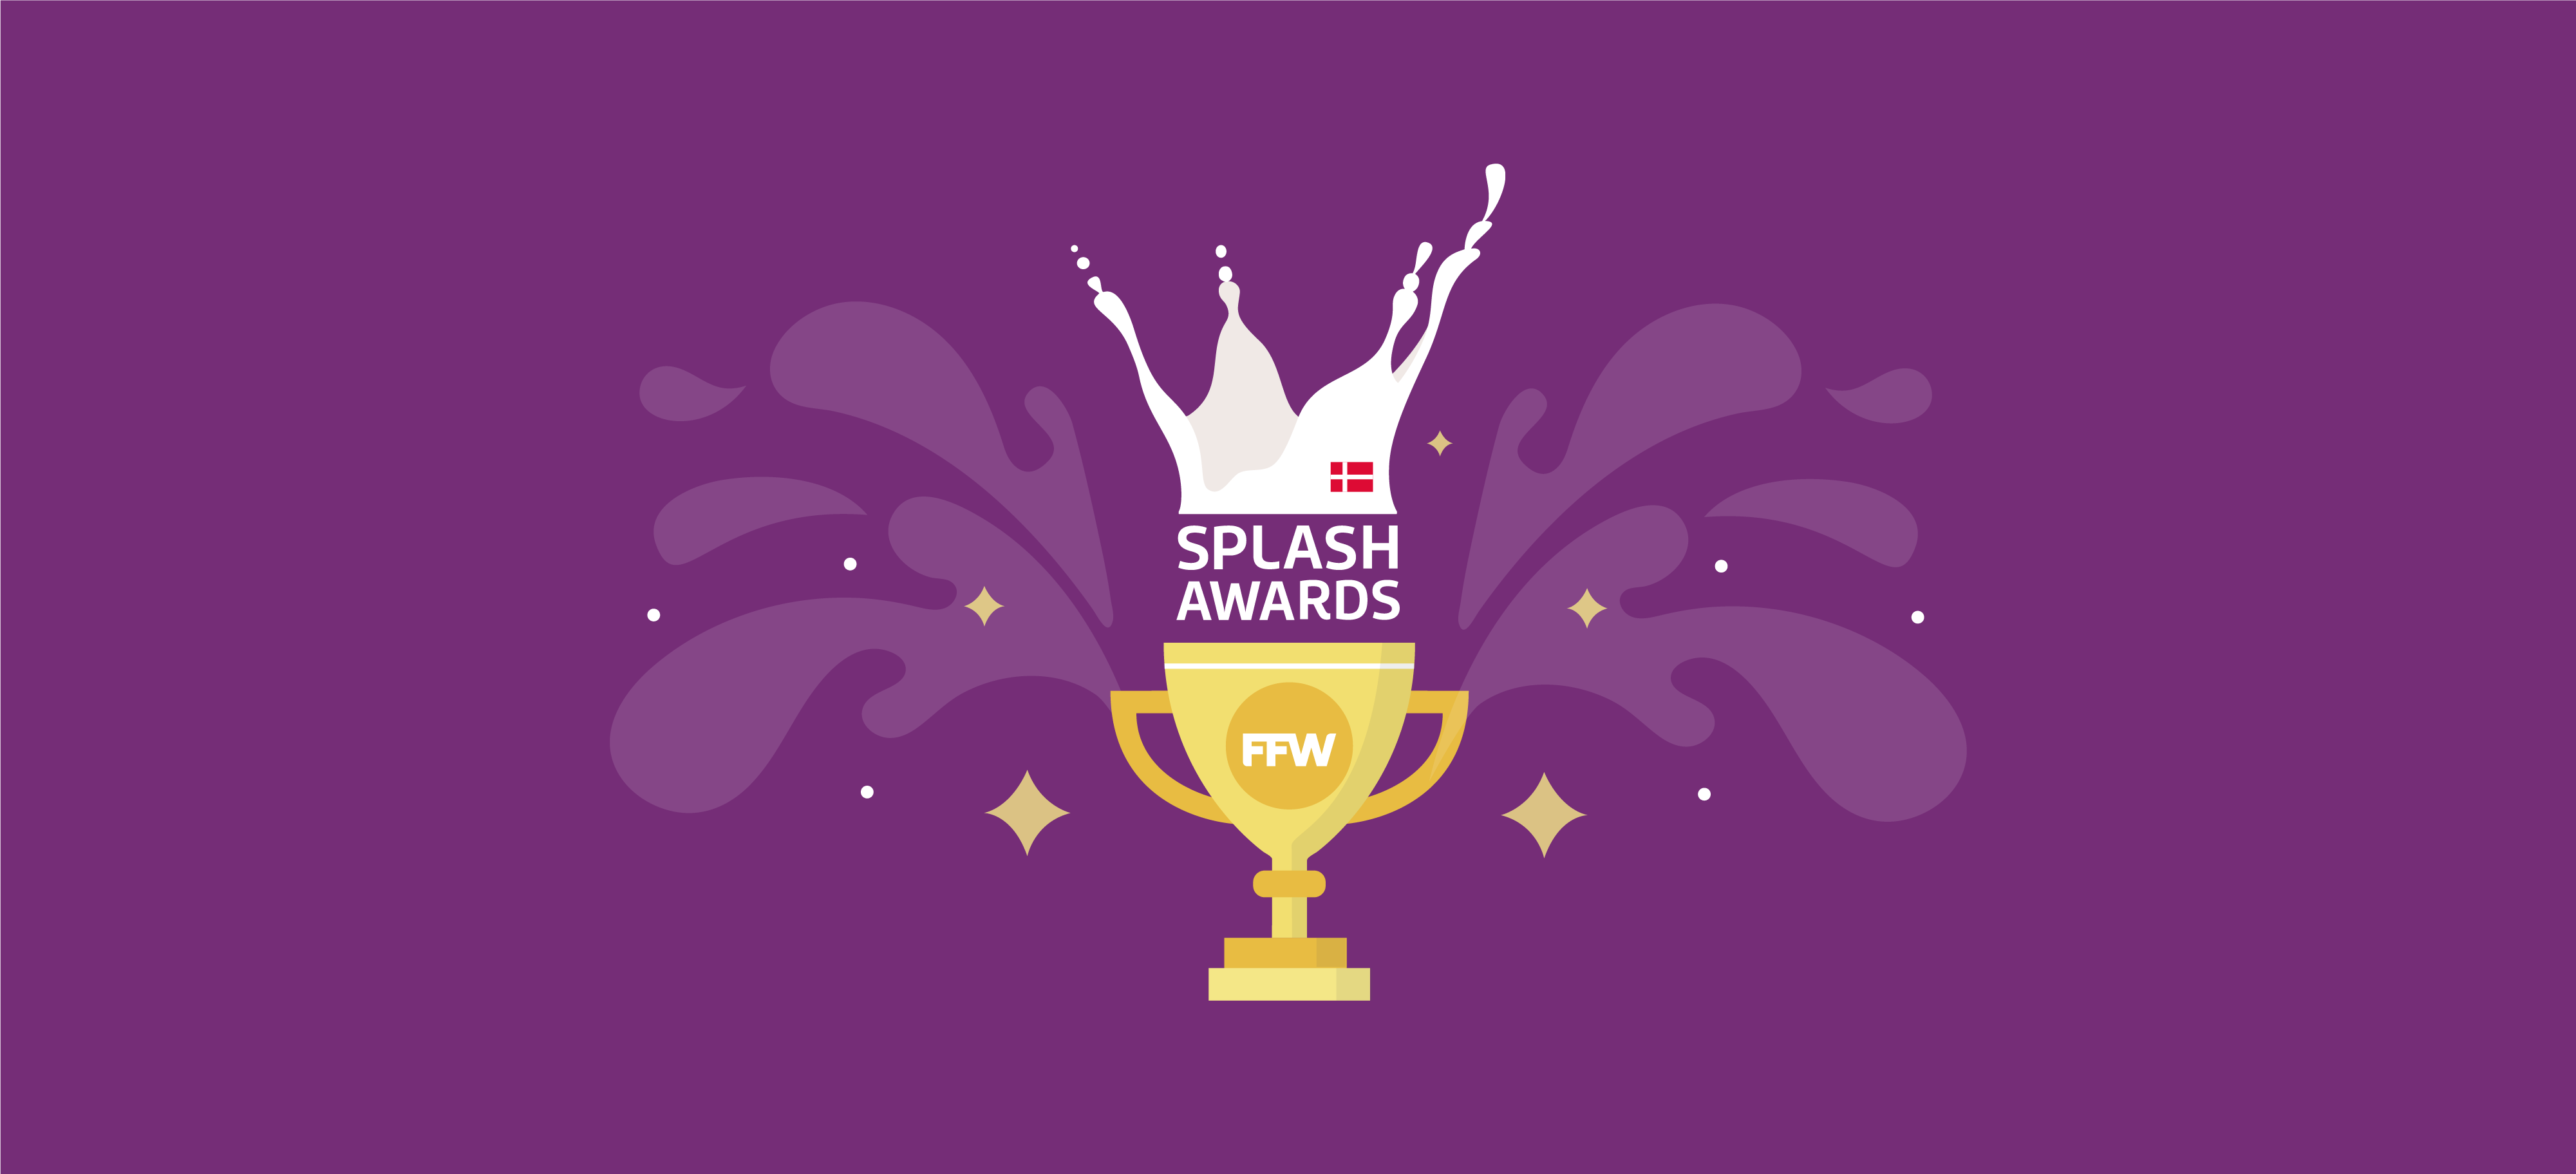 Art of a golden trophy reading FFW Splash Awards on a purple background